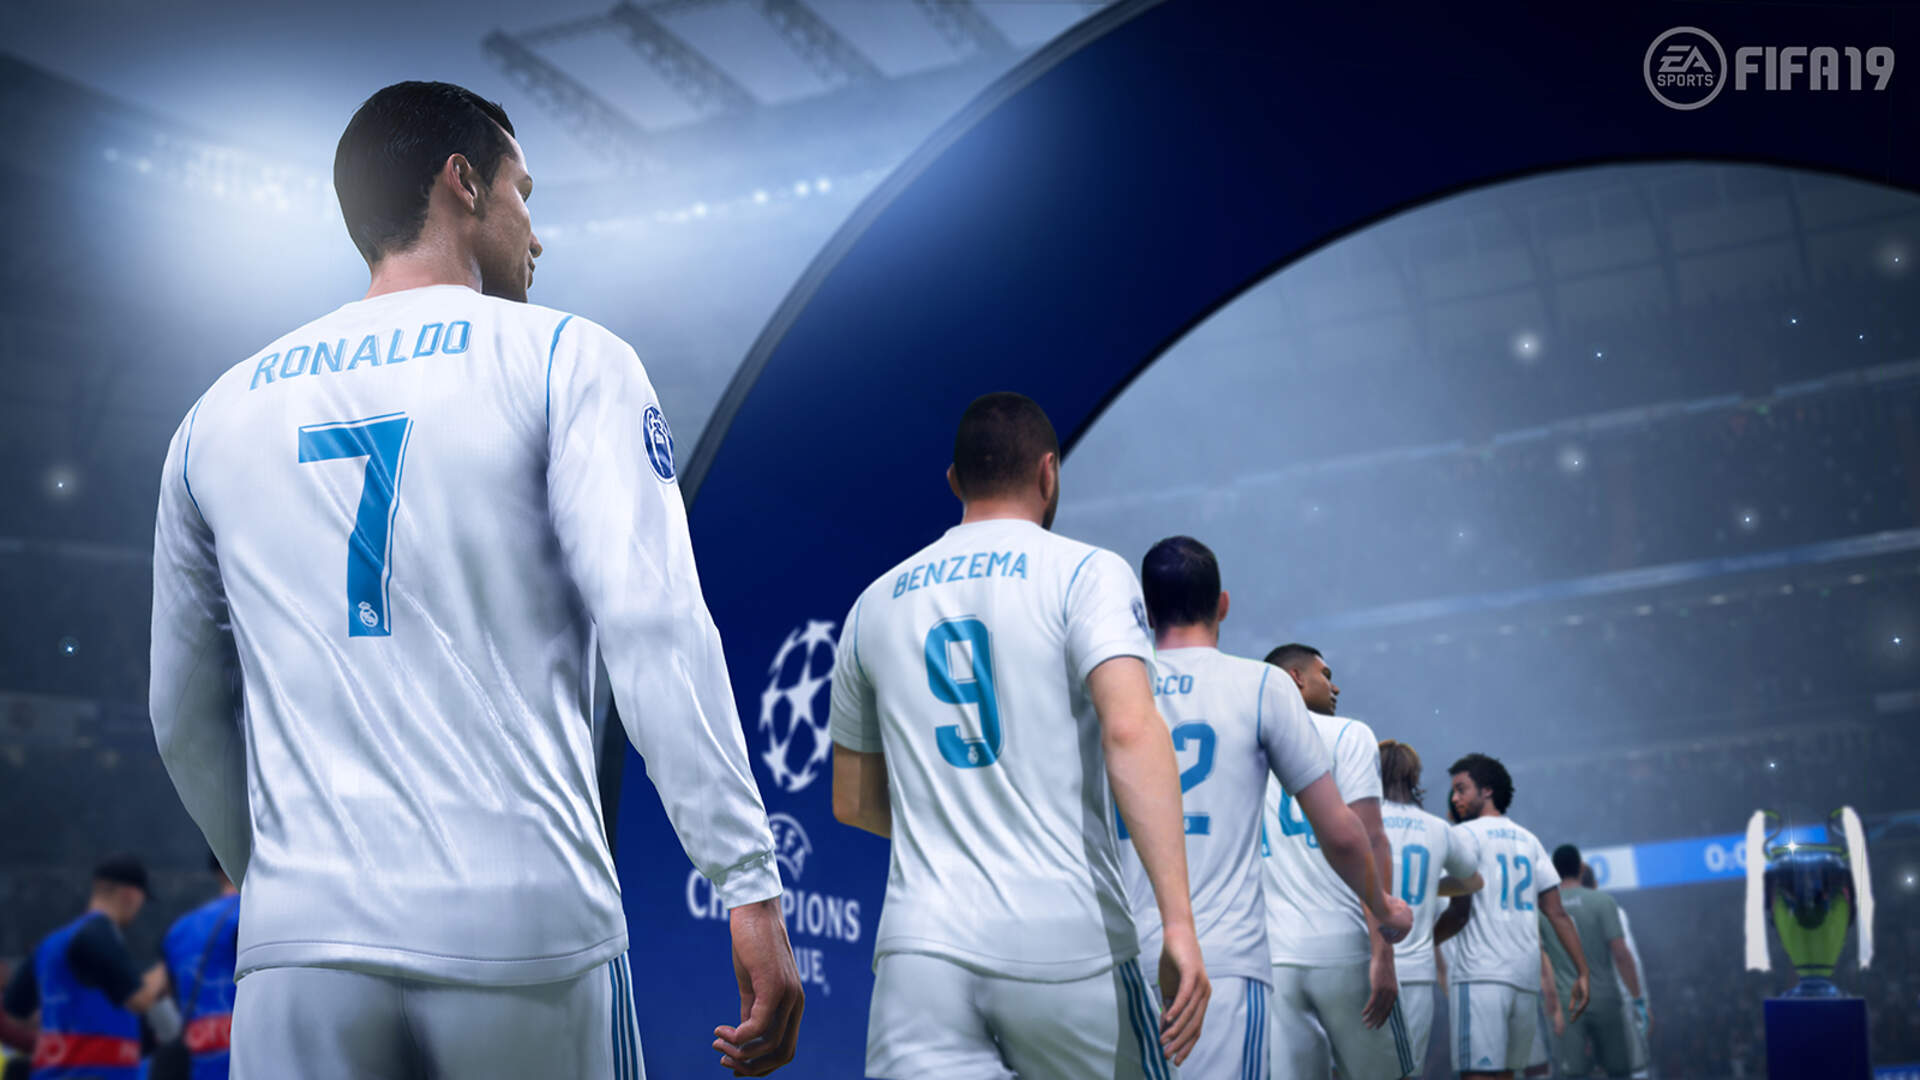 FIFA 19 Switch Already Looks Much Nicer, Even if The Journey is Once Again MIA